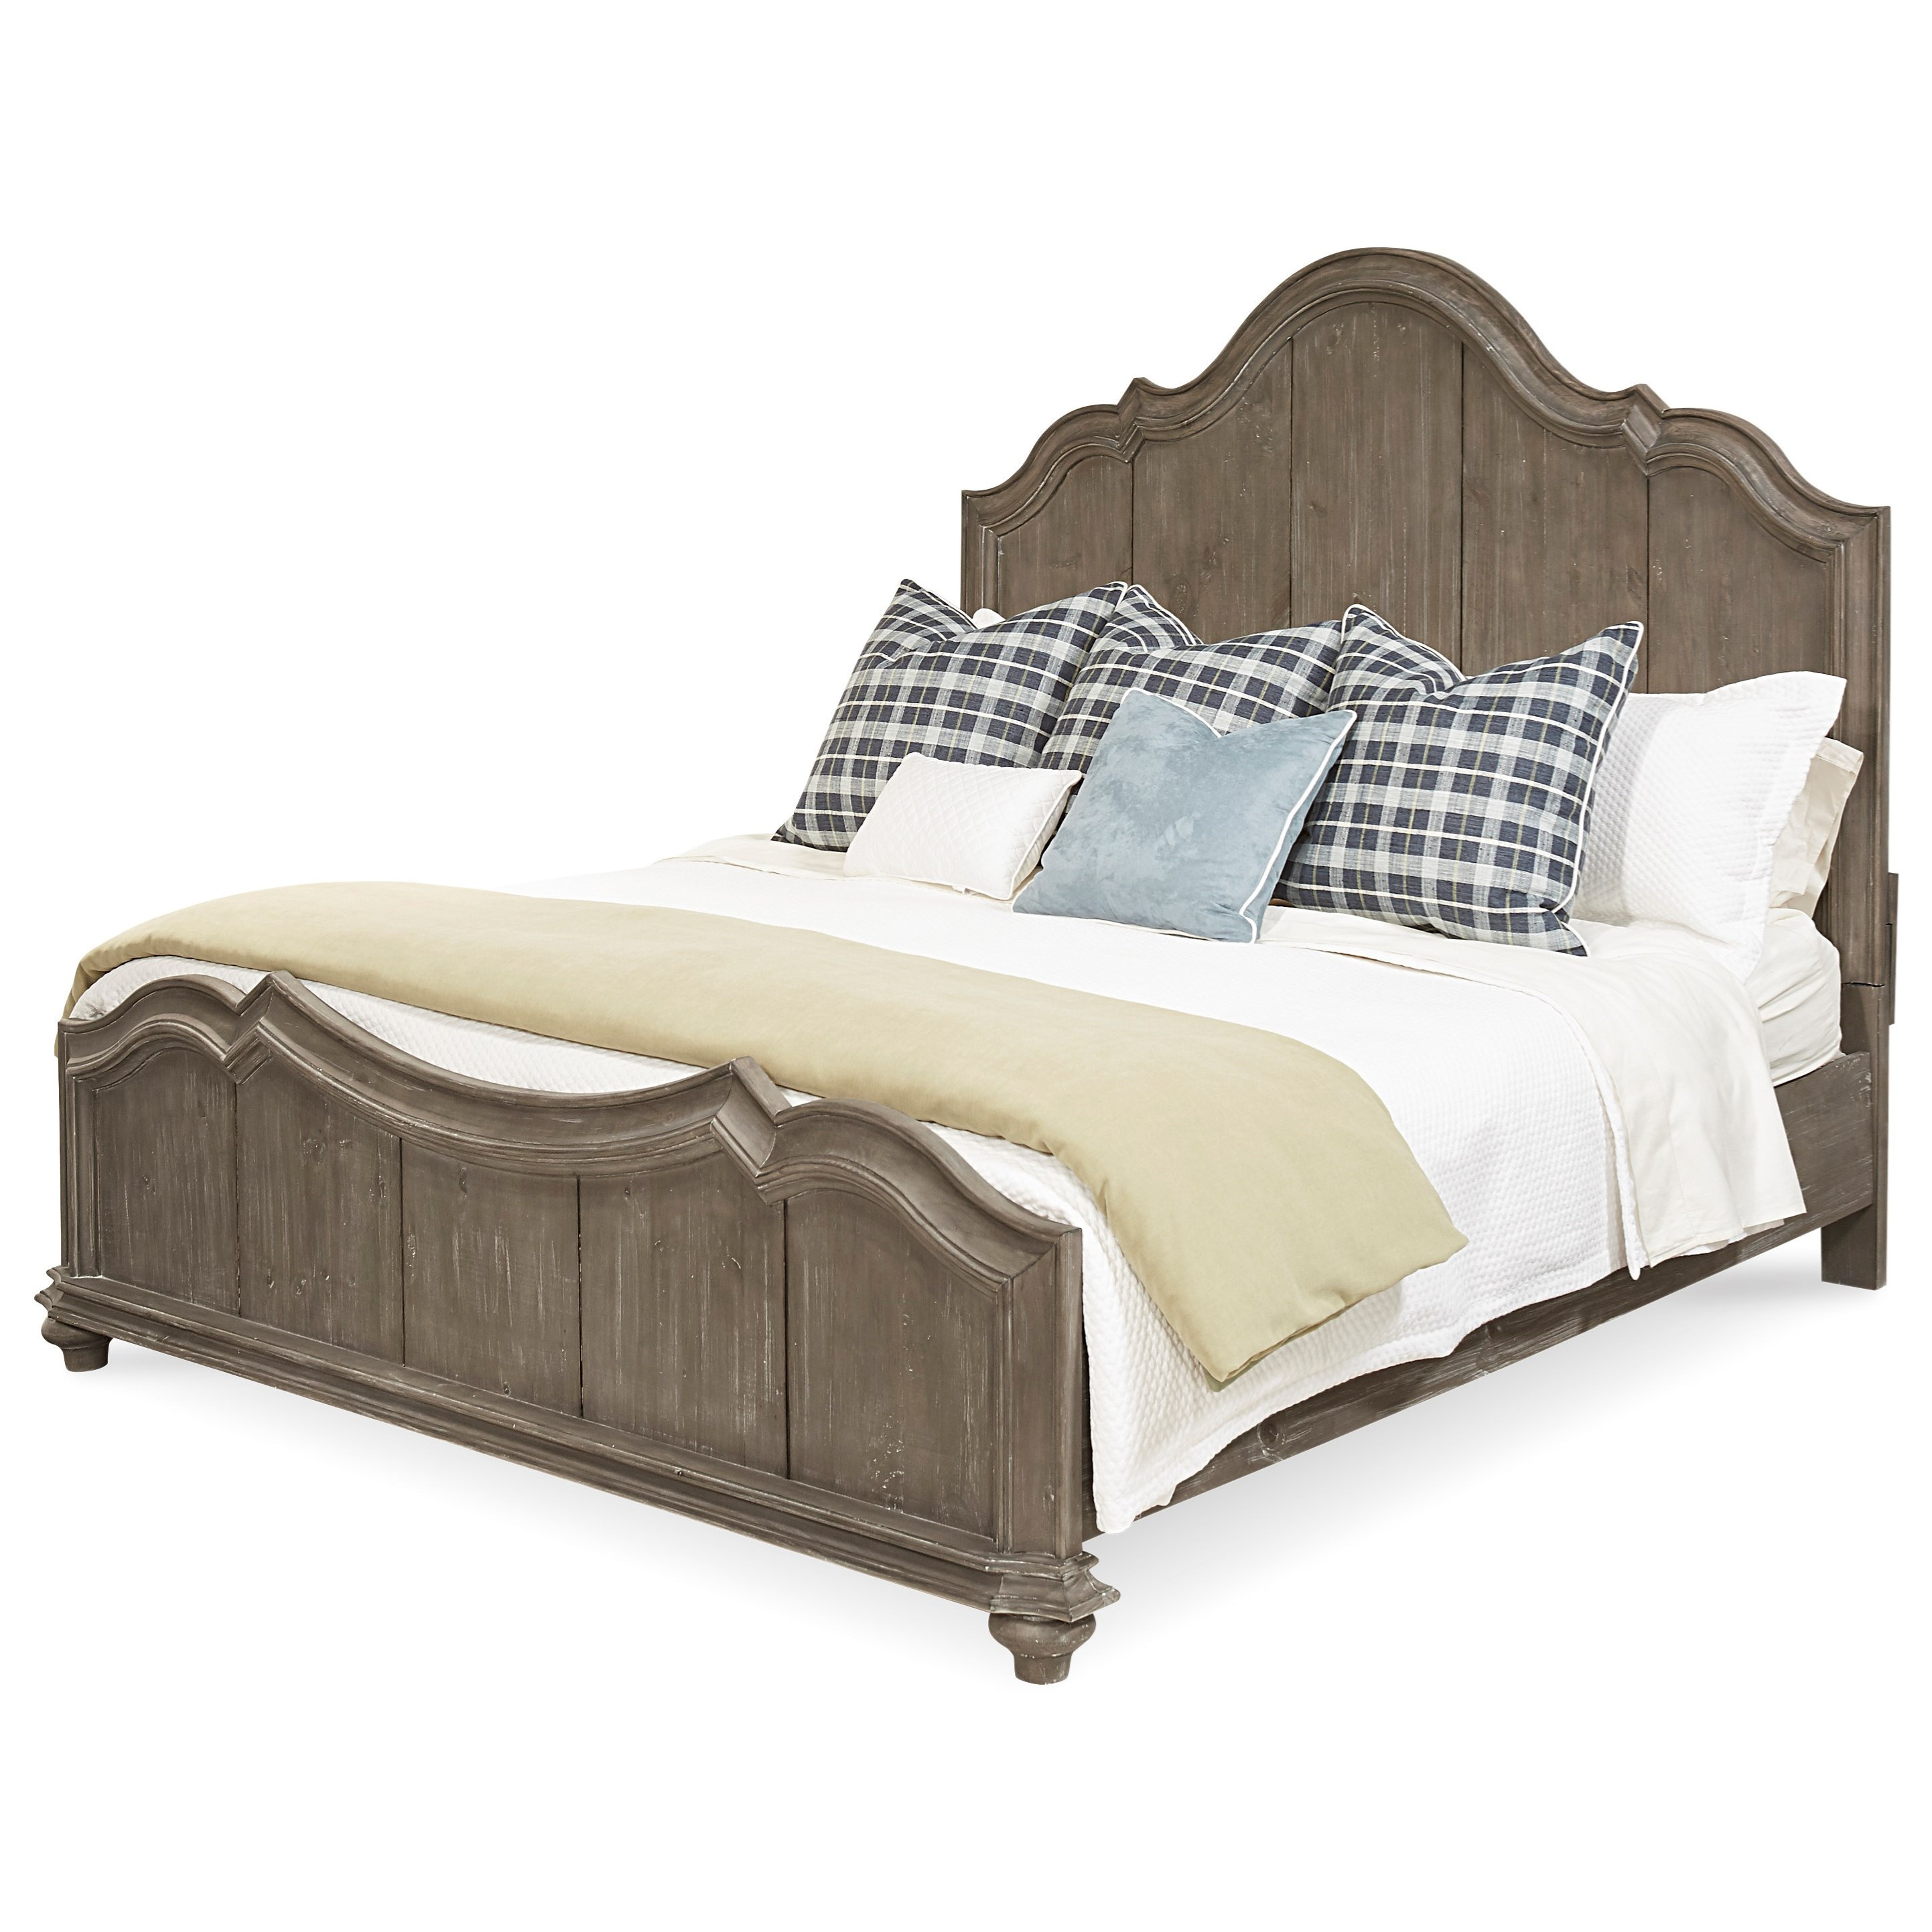 A.R.T. Furniture Inc Allie Queen Panel Bed - Item Number: 404135-2639